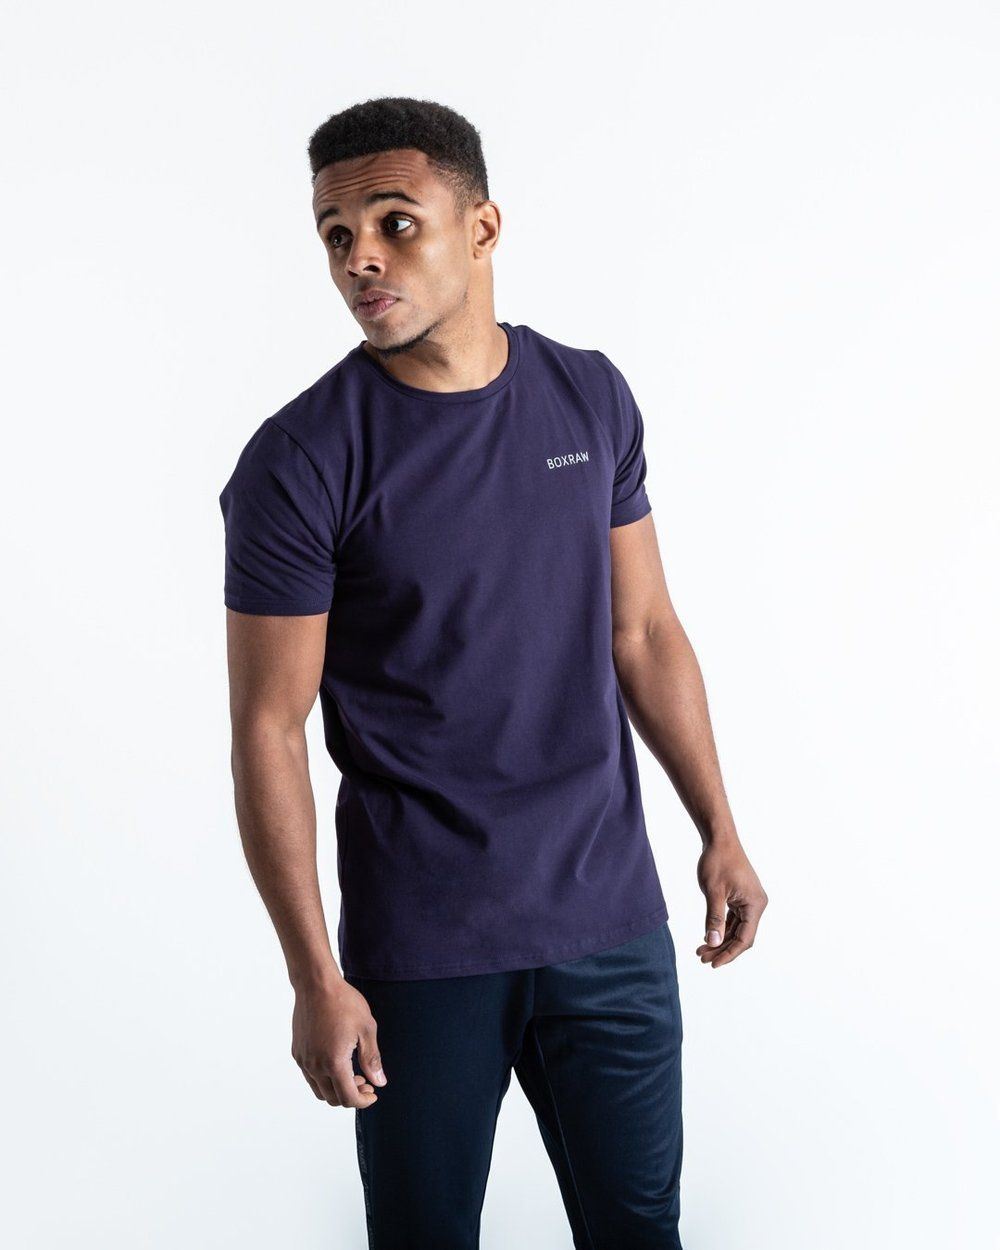 BOXRAW LOGO T-SHIRT - NAVY - Pandemic Fight Gear Inc.